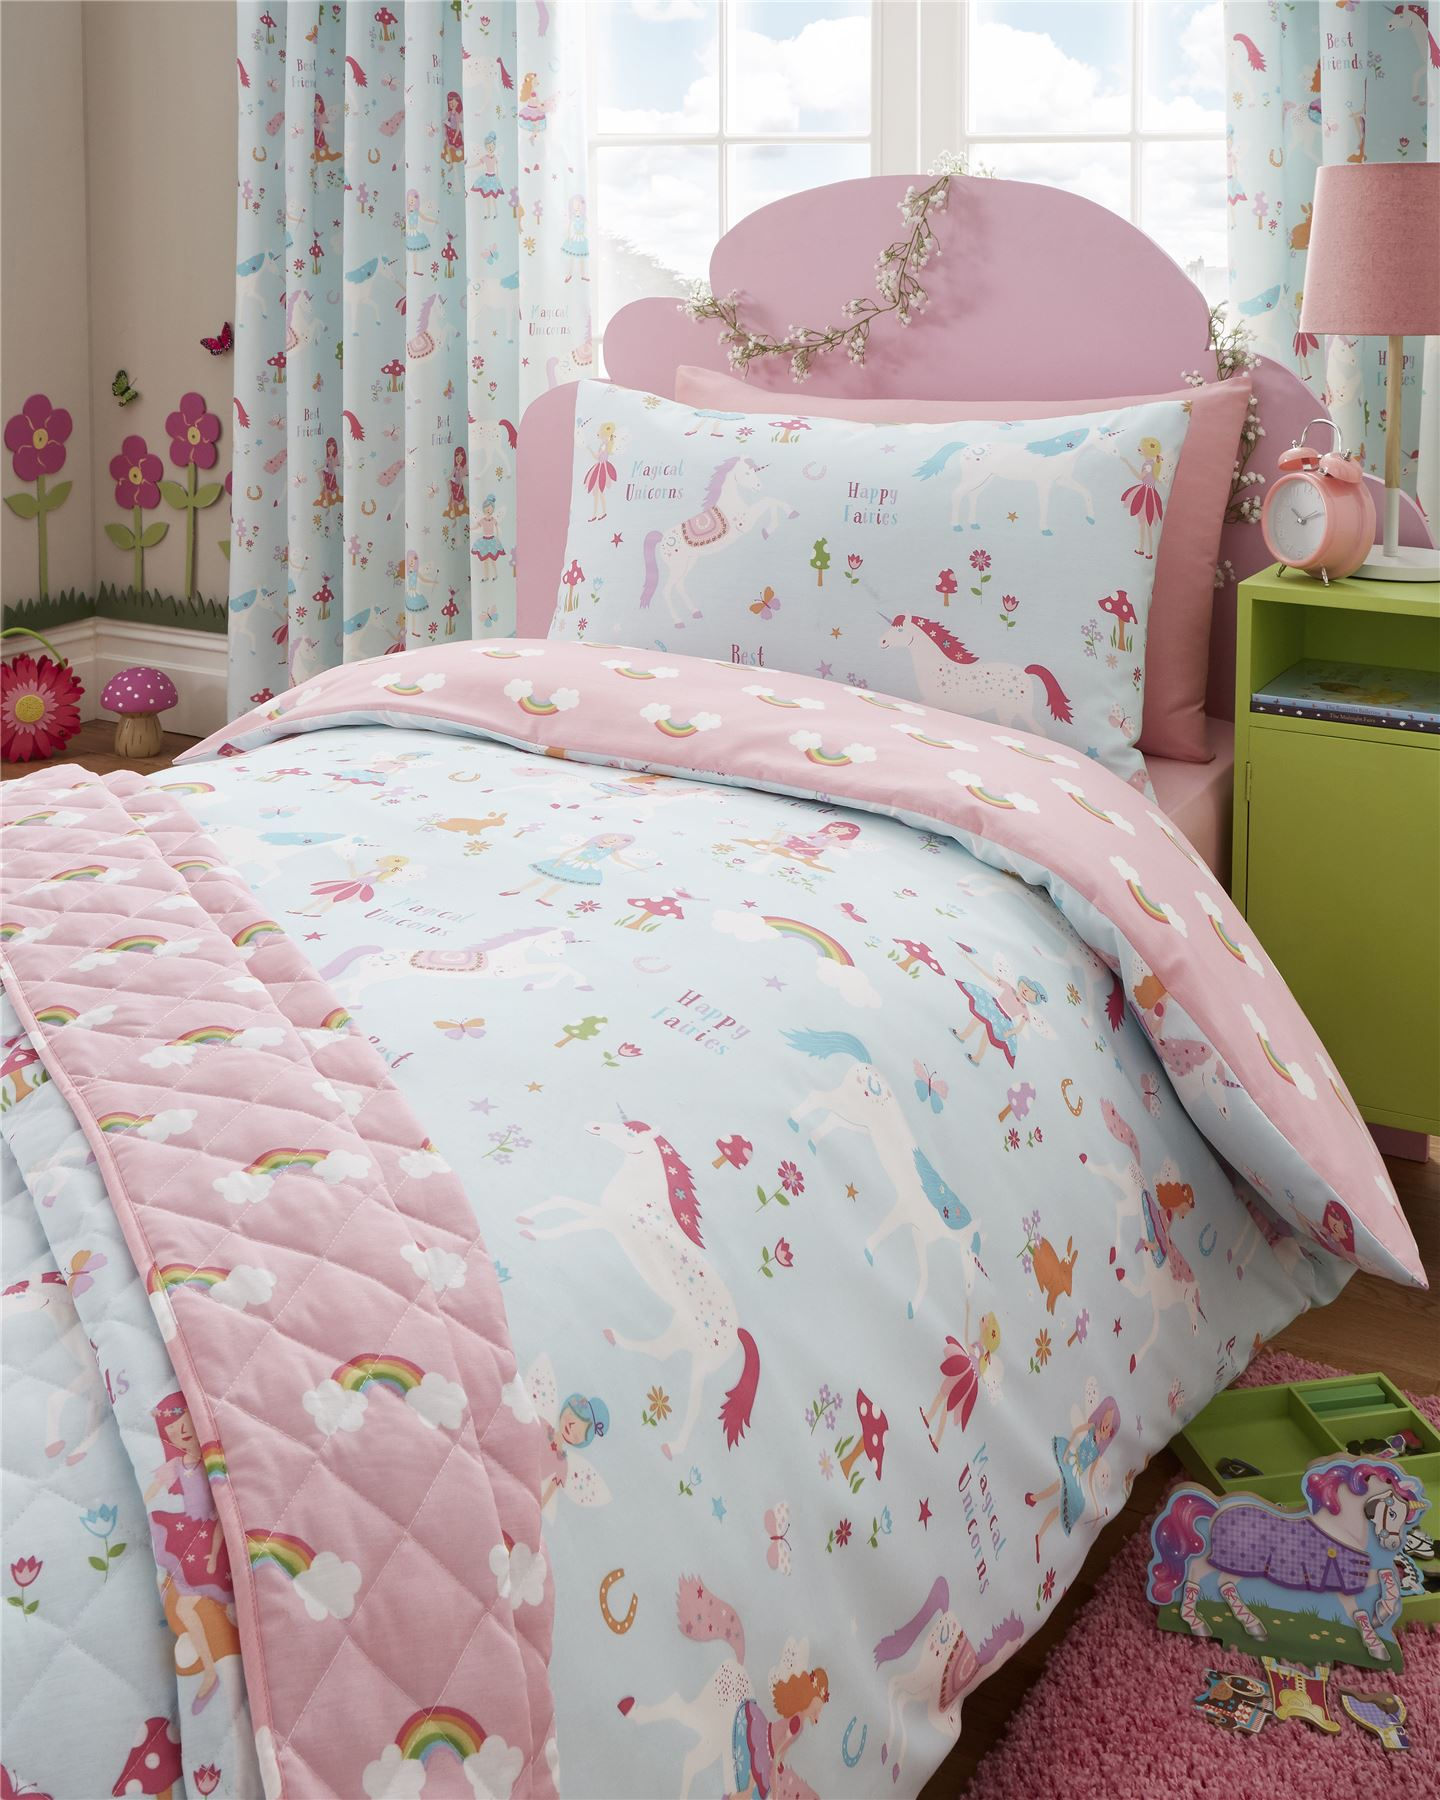 Pony Bedroom Accessories Girls Double Bedding Ebay